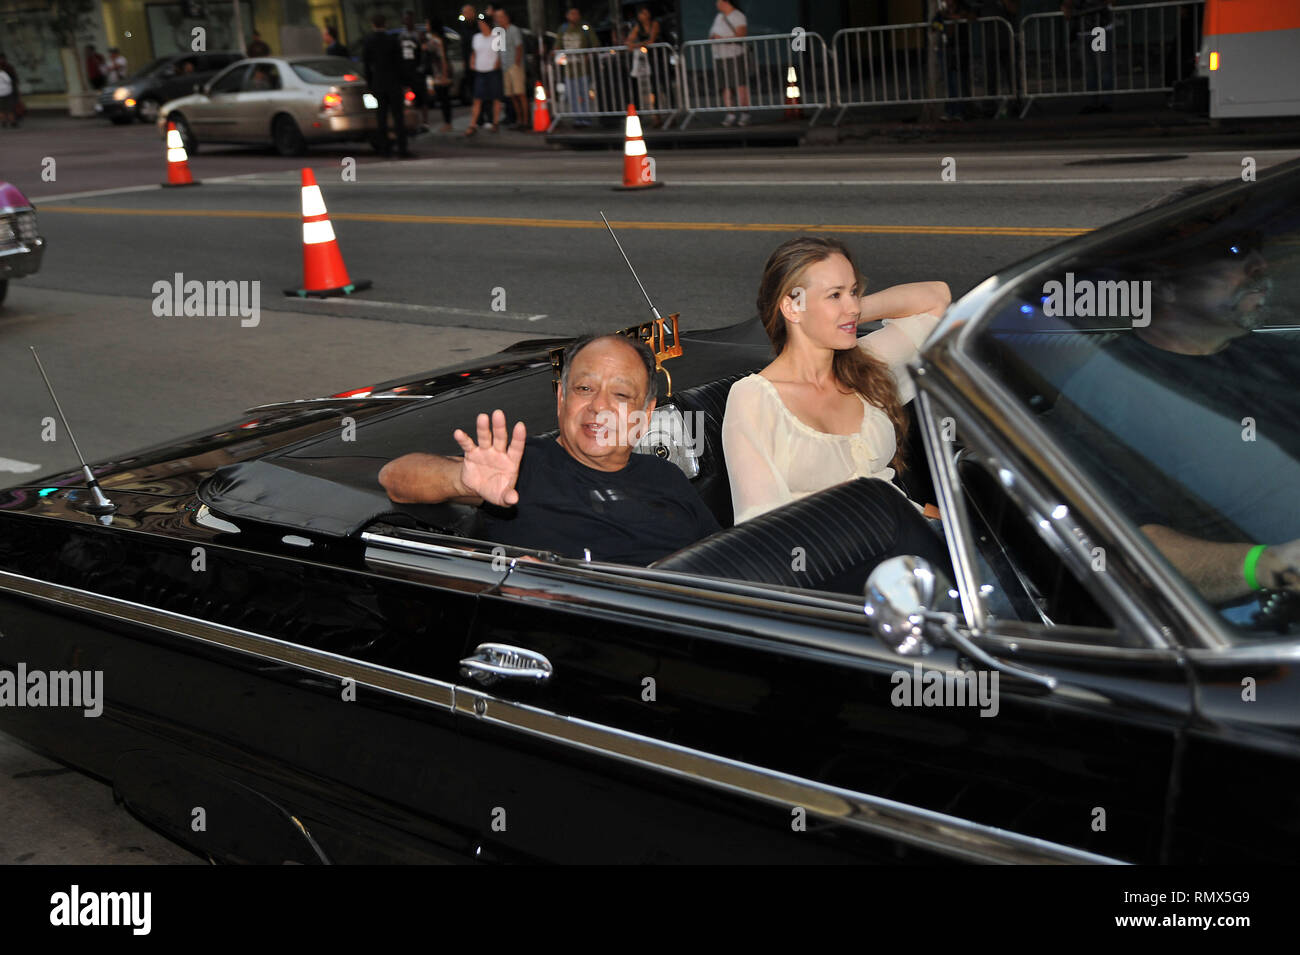 Cheech Marin and wife  Machete Premiere at the Orpheum Theatre In Los Angeles.CheechMarin_48  Event in Hollywood Life - California, Red Carpet and backstage, movie celebrities, TV celebrities, Music celebrities, Topix, Bestof, Arts Culture and Entertainment, Photography,  inquiry tsuni@Gamma-USA.com , Credit Tsuni / USA,  accessory wear by people on event. shoes, jewelery, ring, earring, bag ambience and others. from 2010 - Stock Image